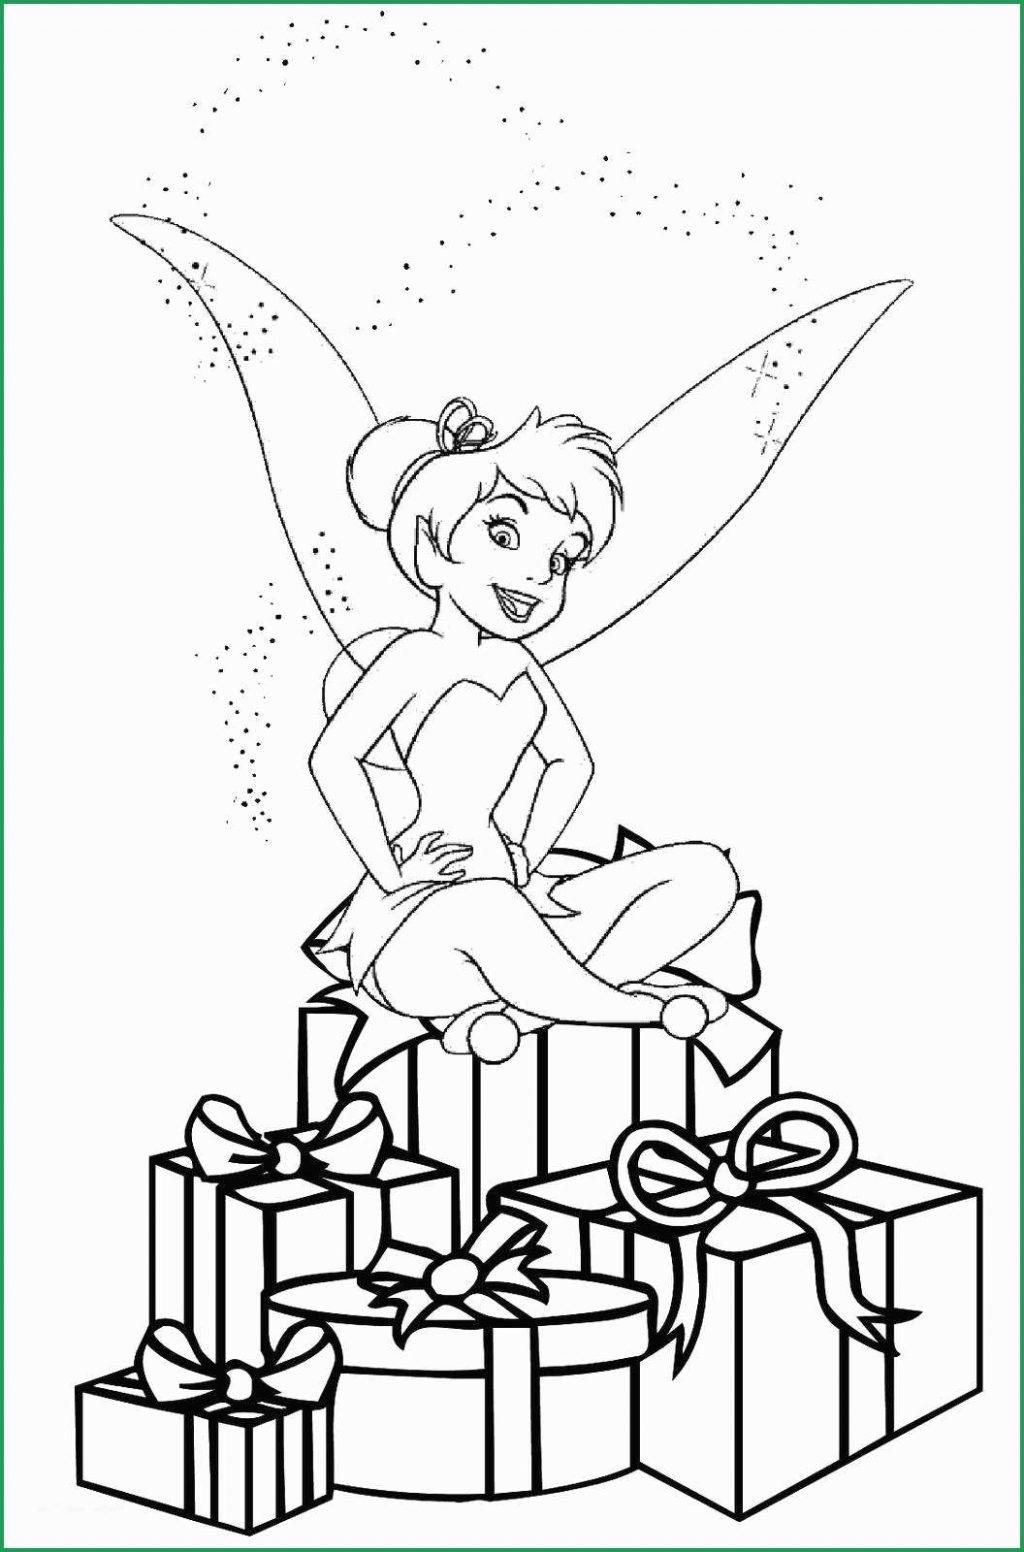 Coloring Ideas : Tinkerbell Coloring Pages Christmas Online - Tinkerbell Coloring Pages Printable Free